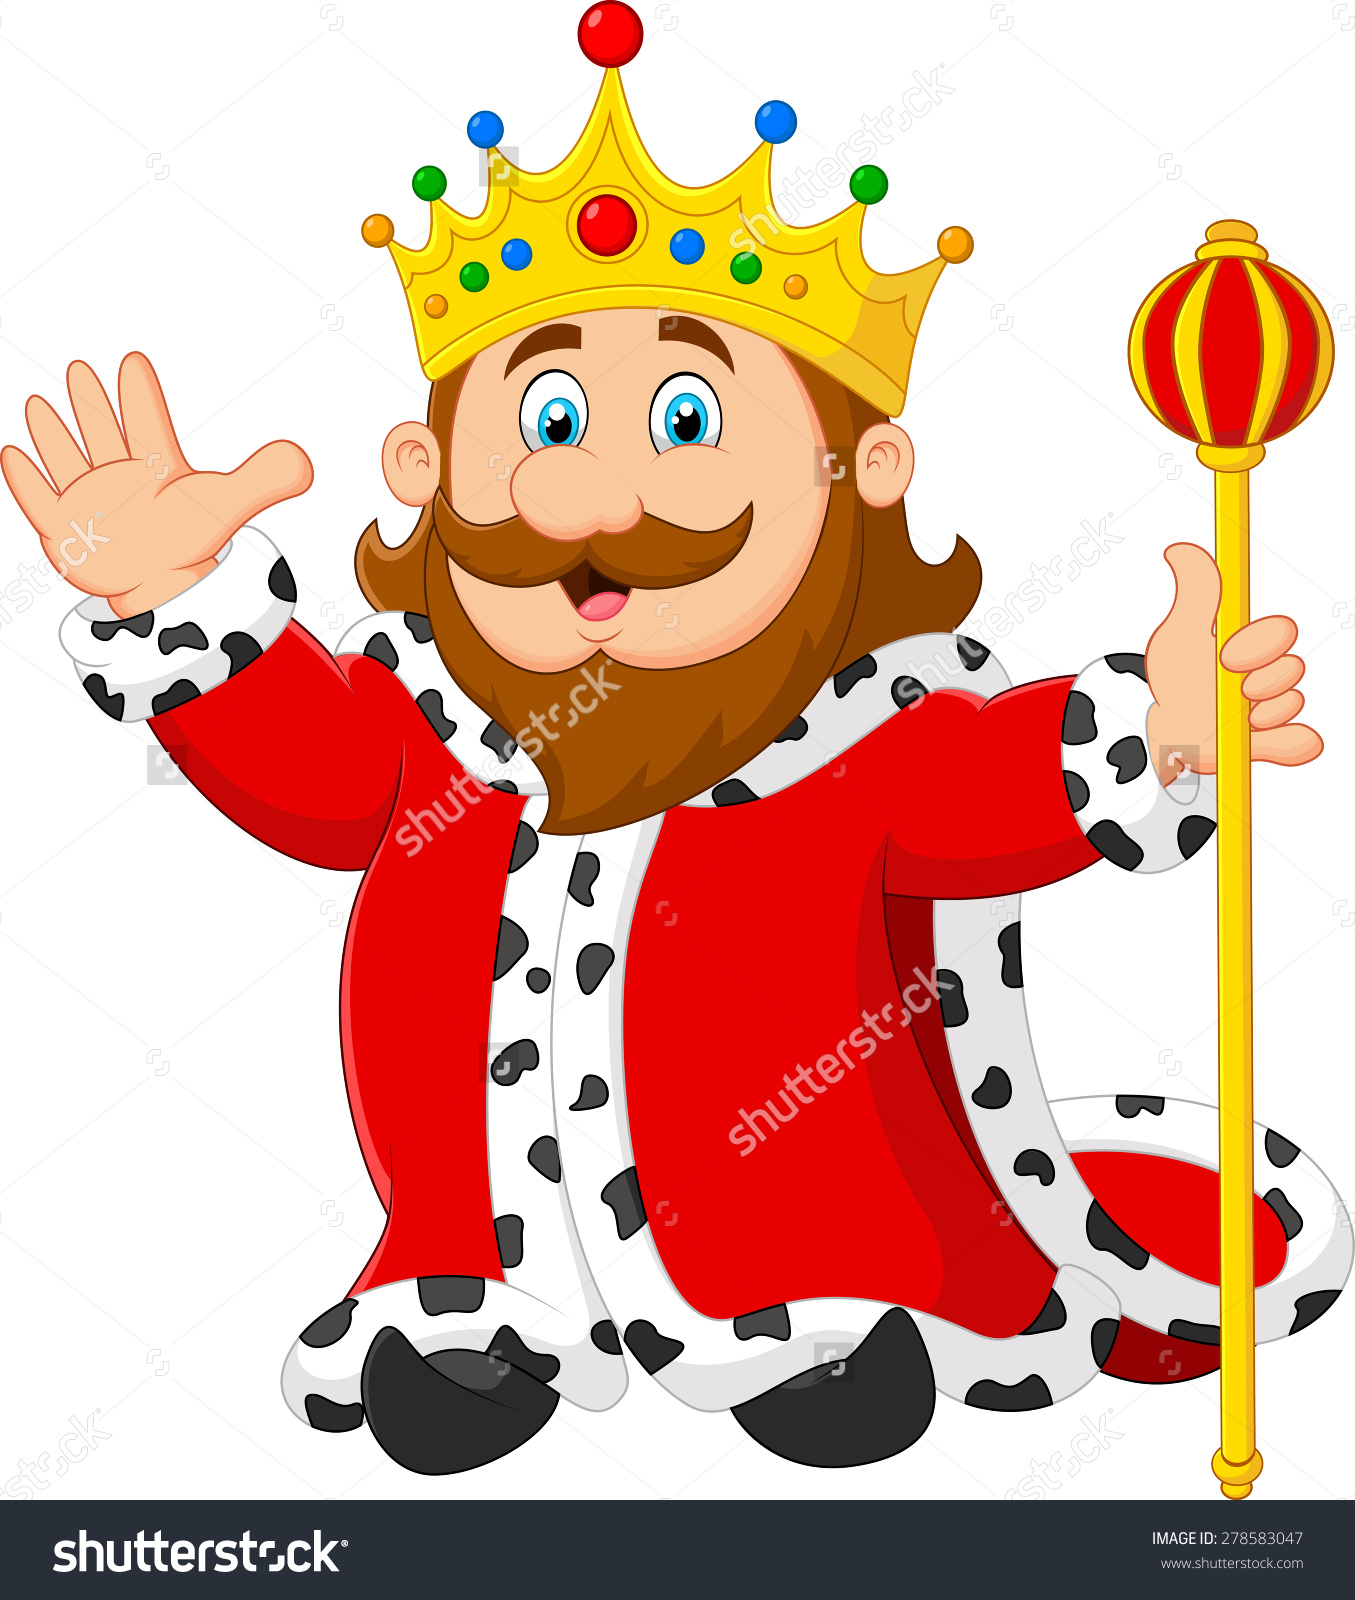 King Clipart Page 1 1355 x 1600. Downloa-King Clipart Page 1 1355 x 1600. Download. King Clip Art ...-7